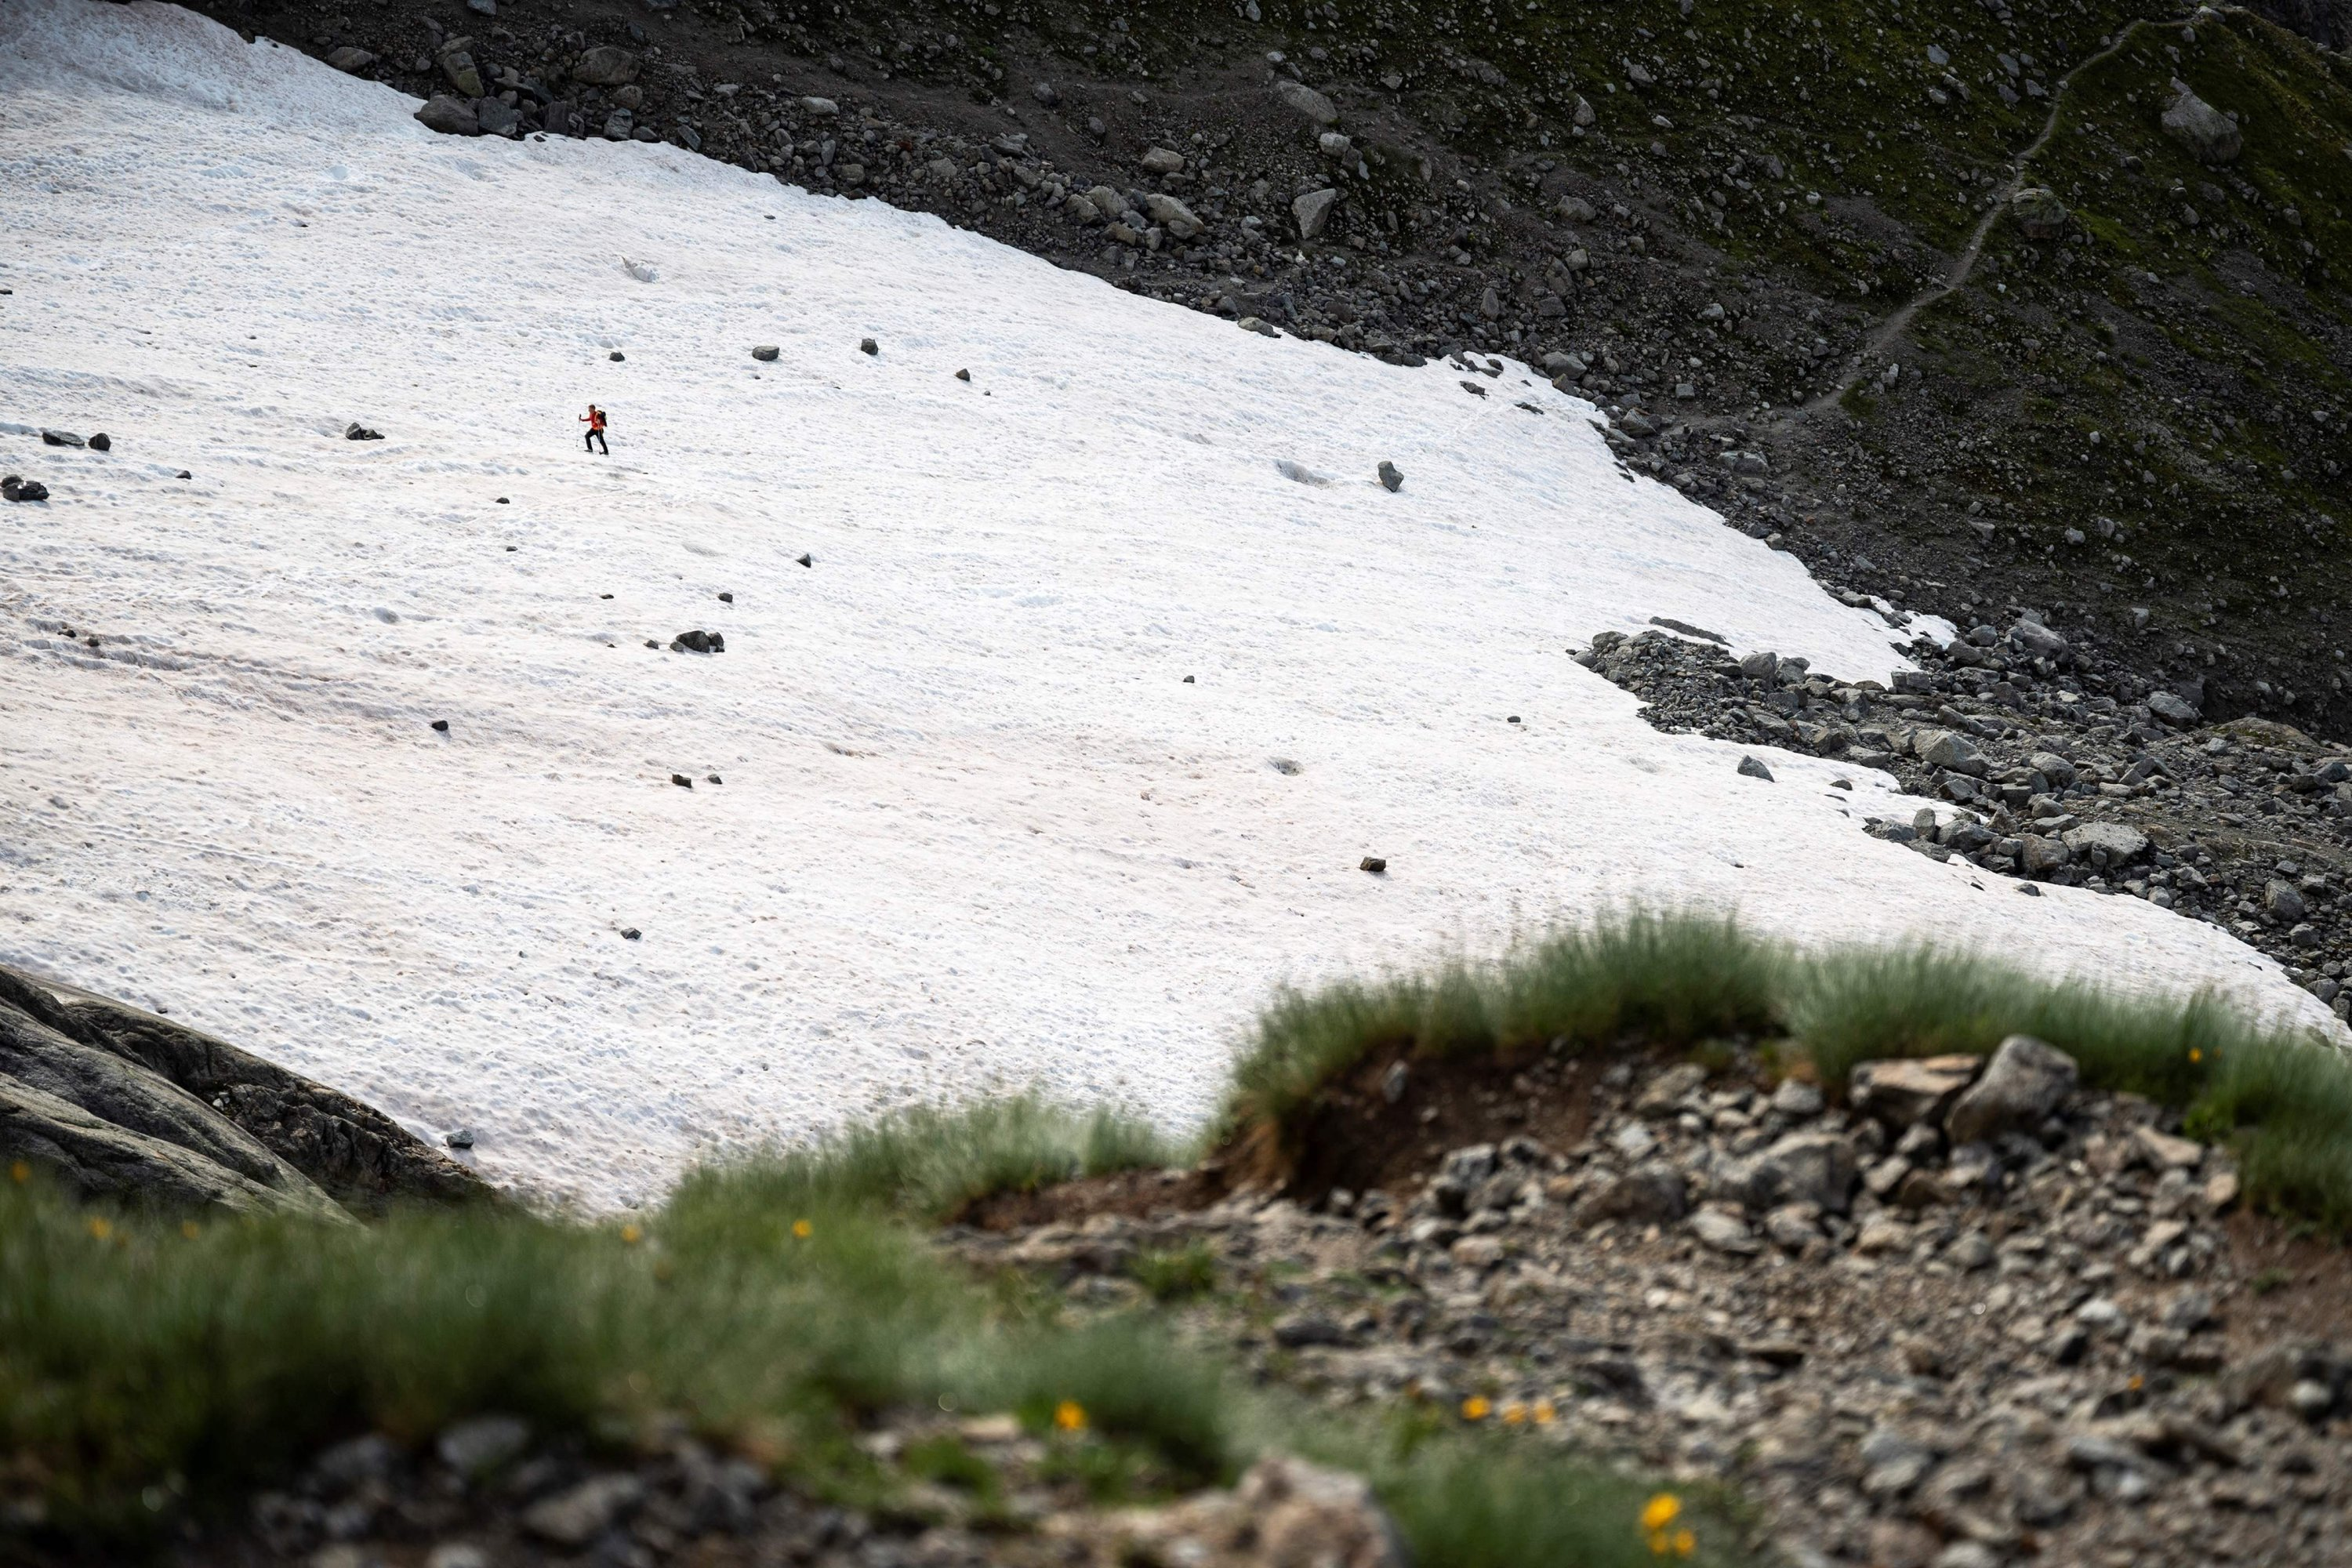 An alpinist walks on a snowfield on the path to the Boccalatte Hut in Courmayeur, Alps Region, north-western Italy, Aug. 5, 2021. (AFP Photo)